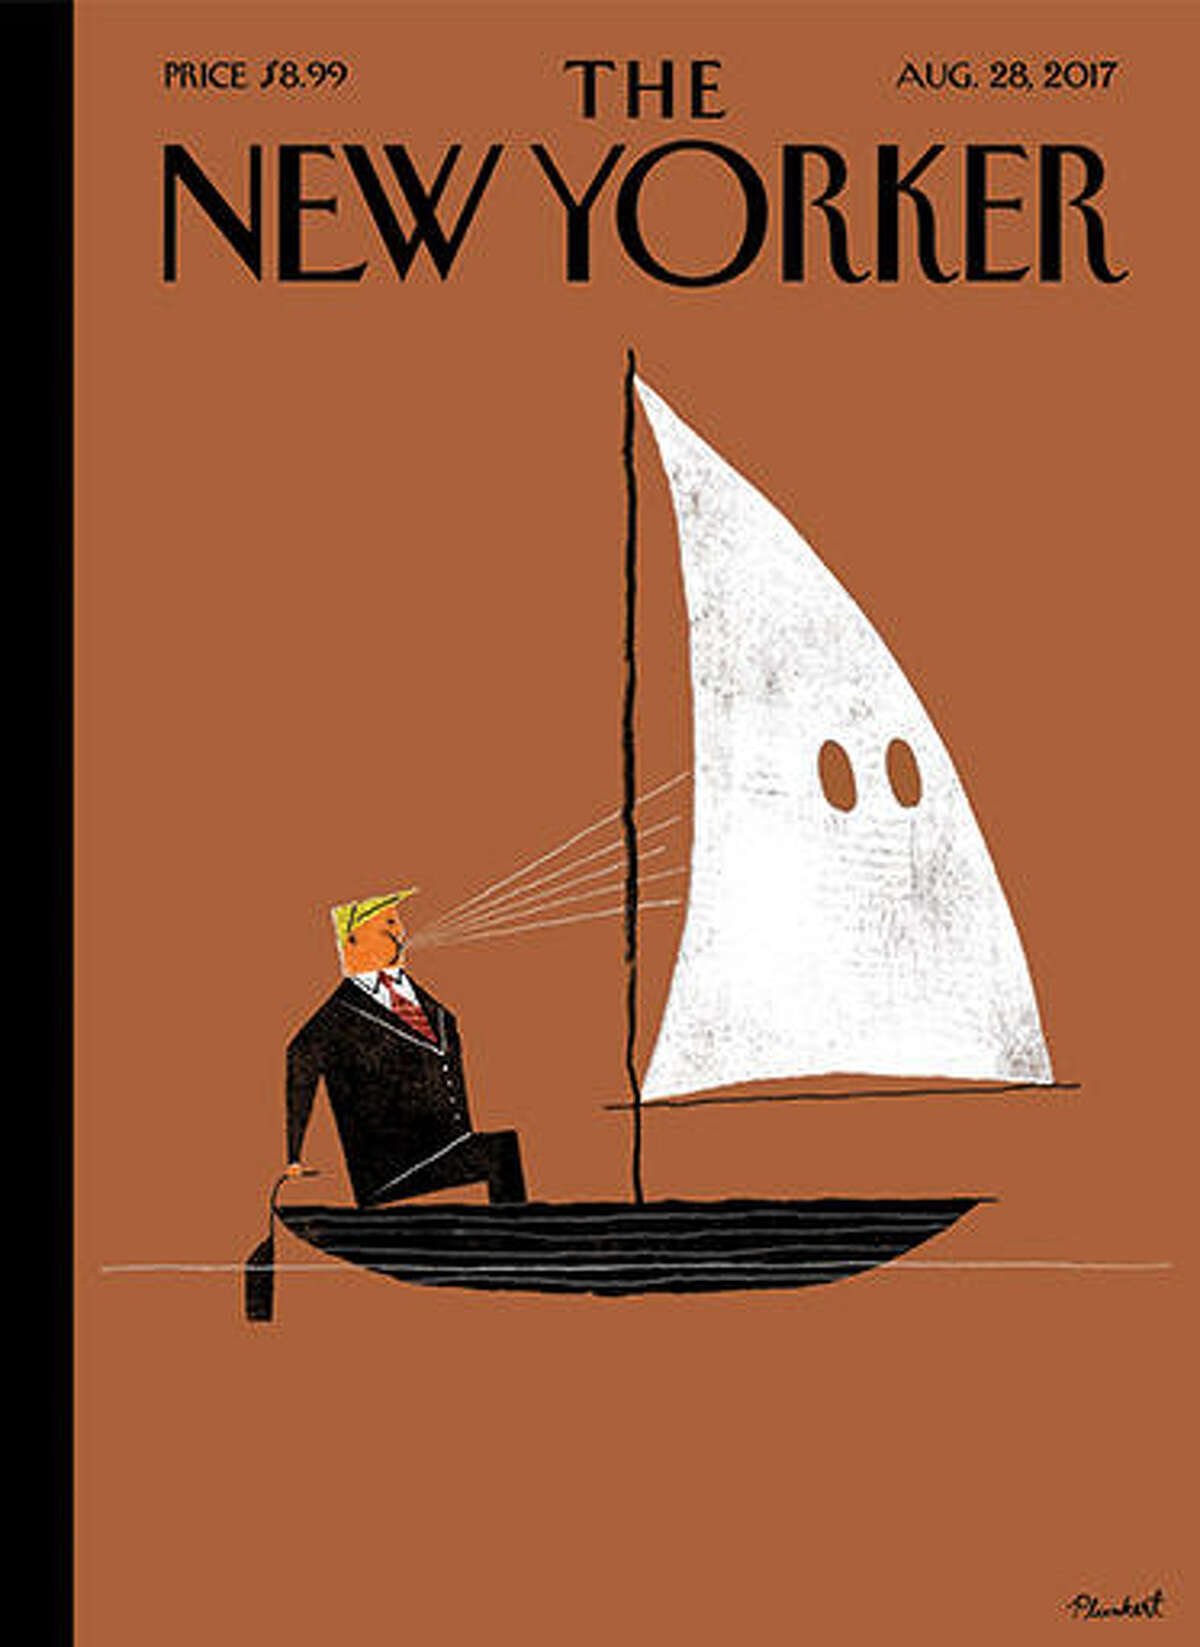 Magazines with national circulations have created cover art focused on Donald Trump since he's taken office.